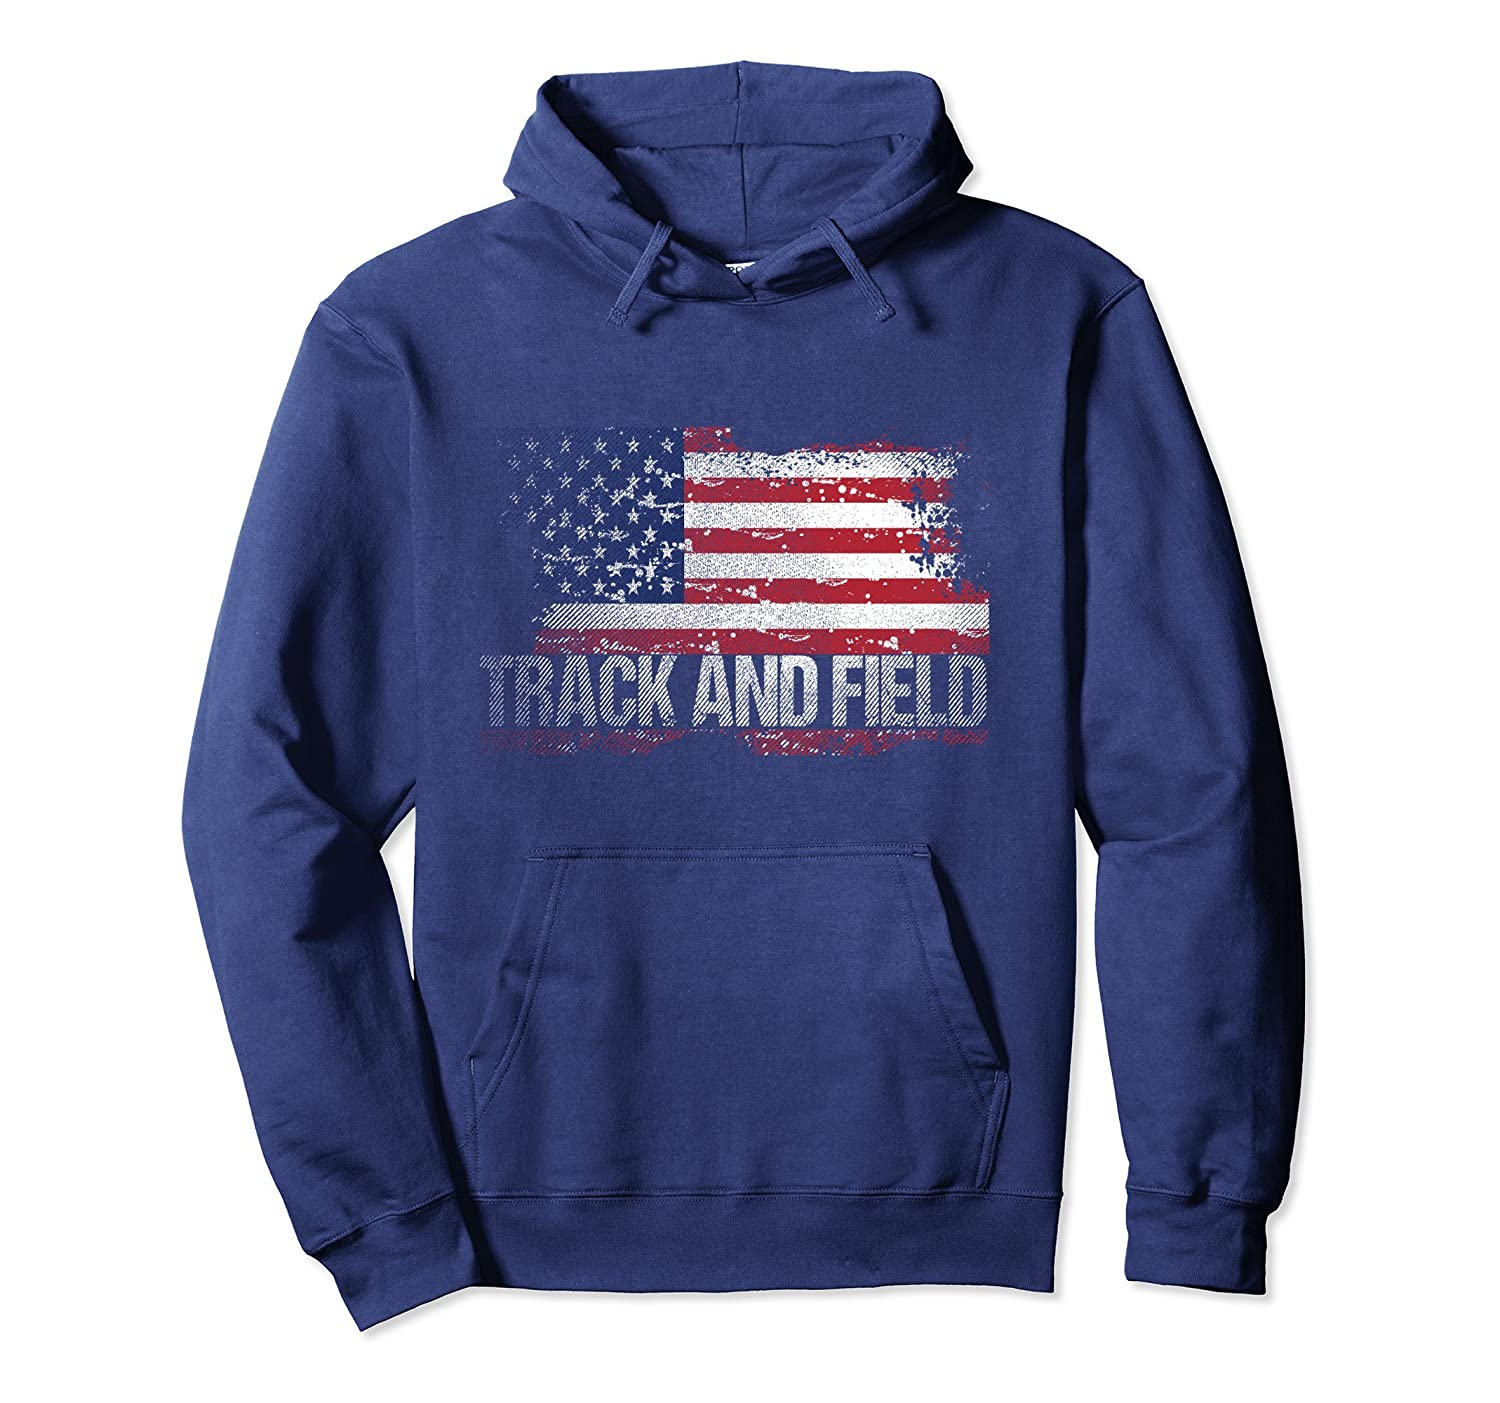 USA Flag Track And Field hoodie-anz